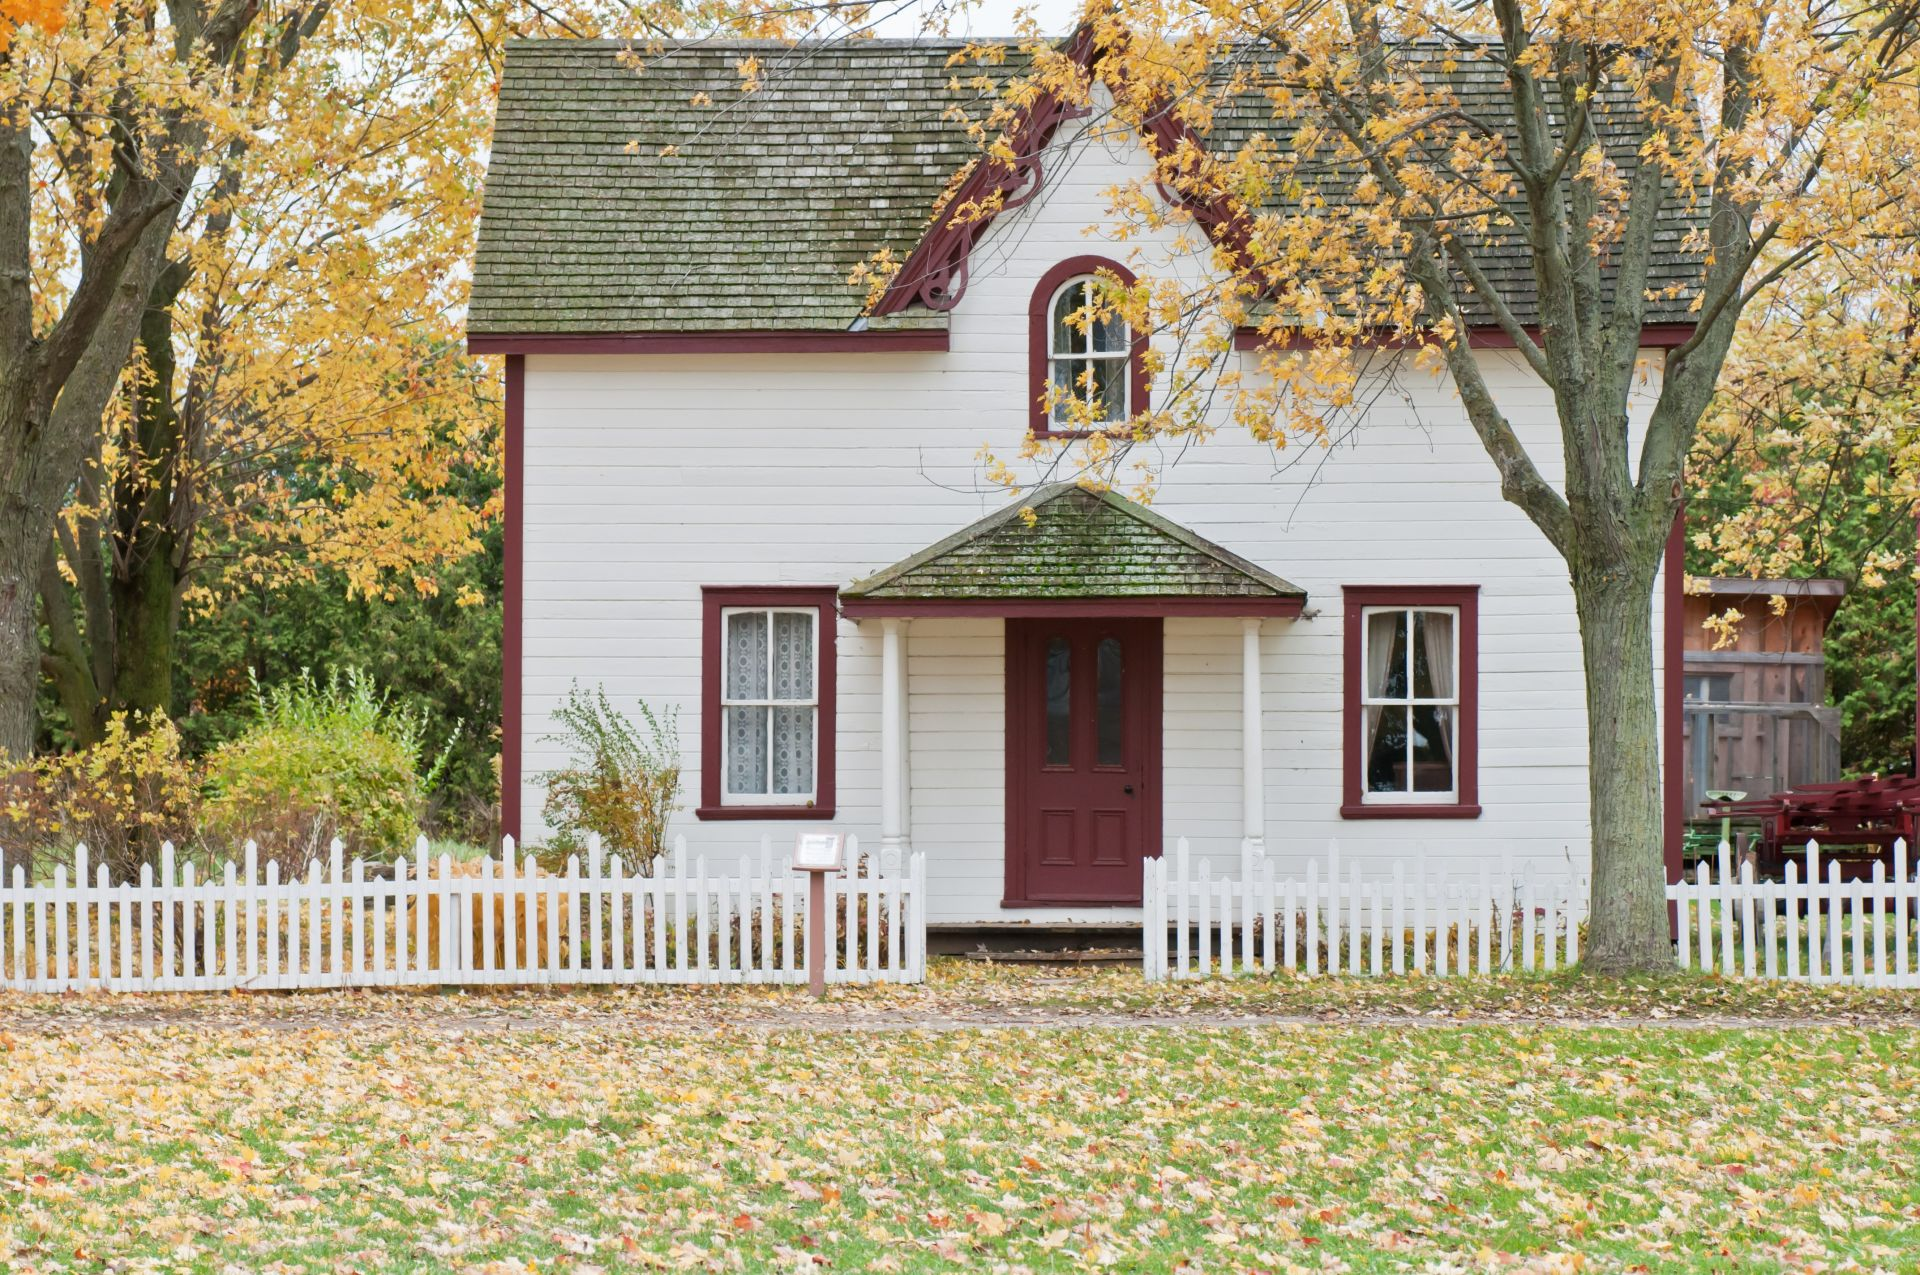 3 Tips for Home Buying in a Competitive Market